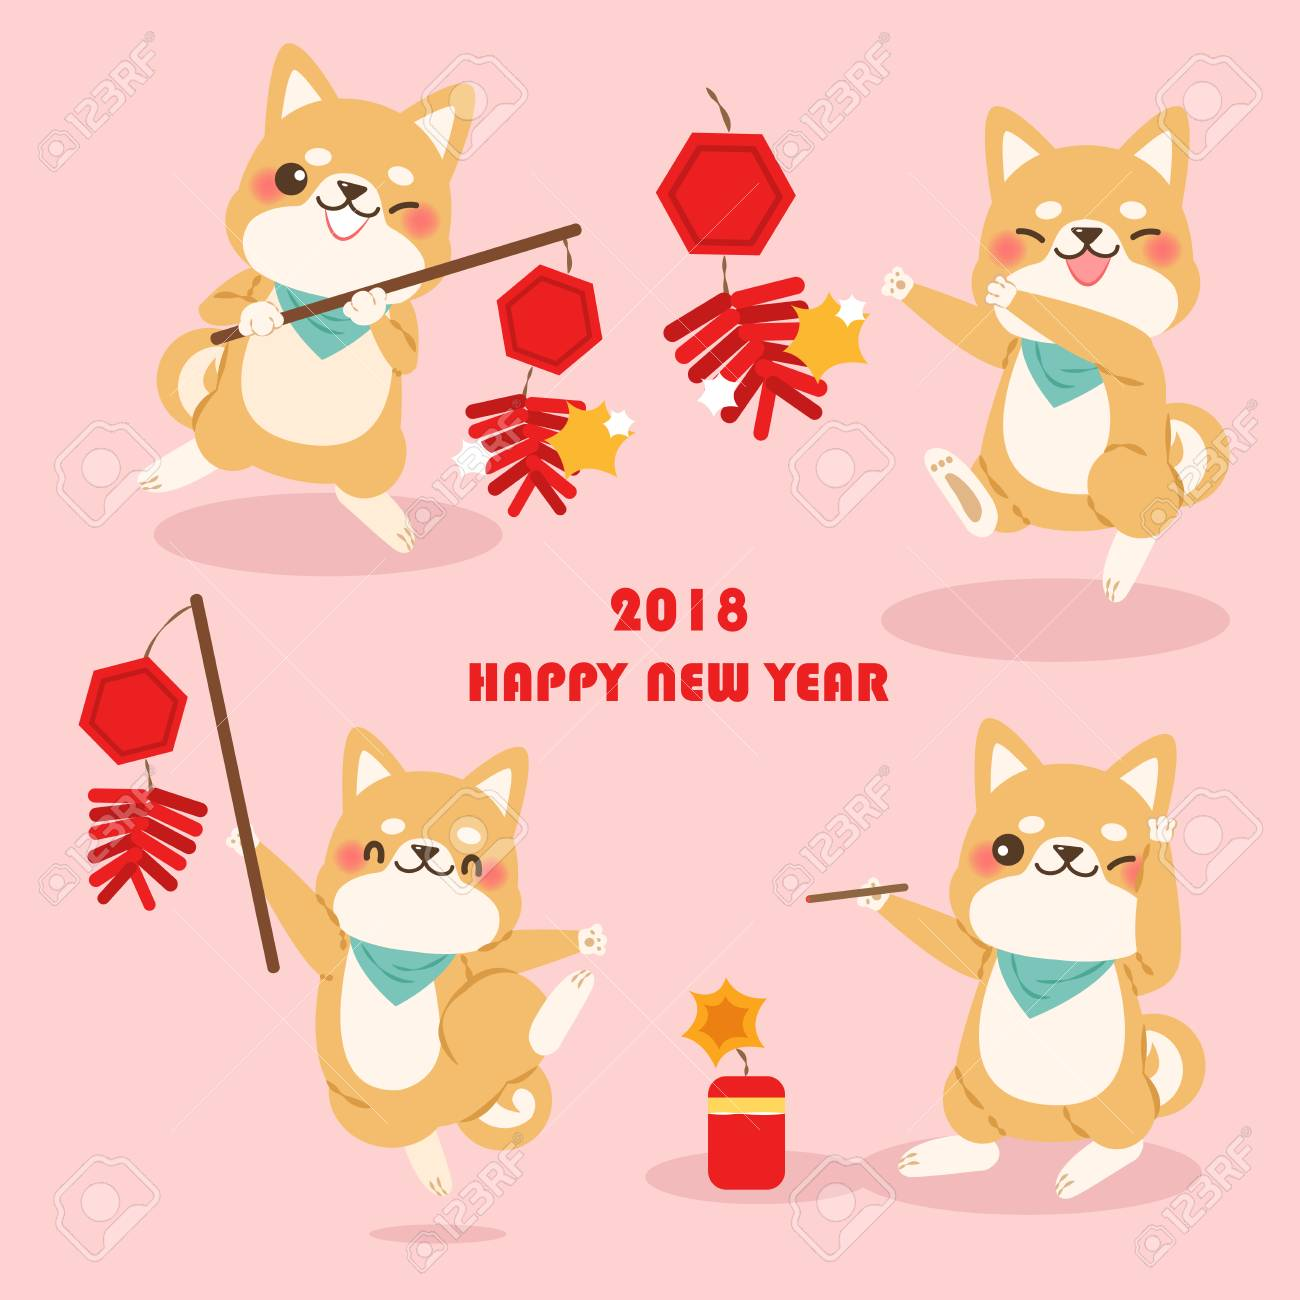 cute cartoon dog with 2018 new year background on pink background stock vector 90370041